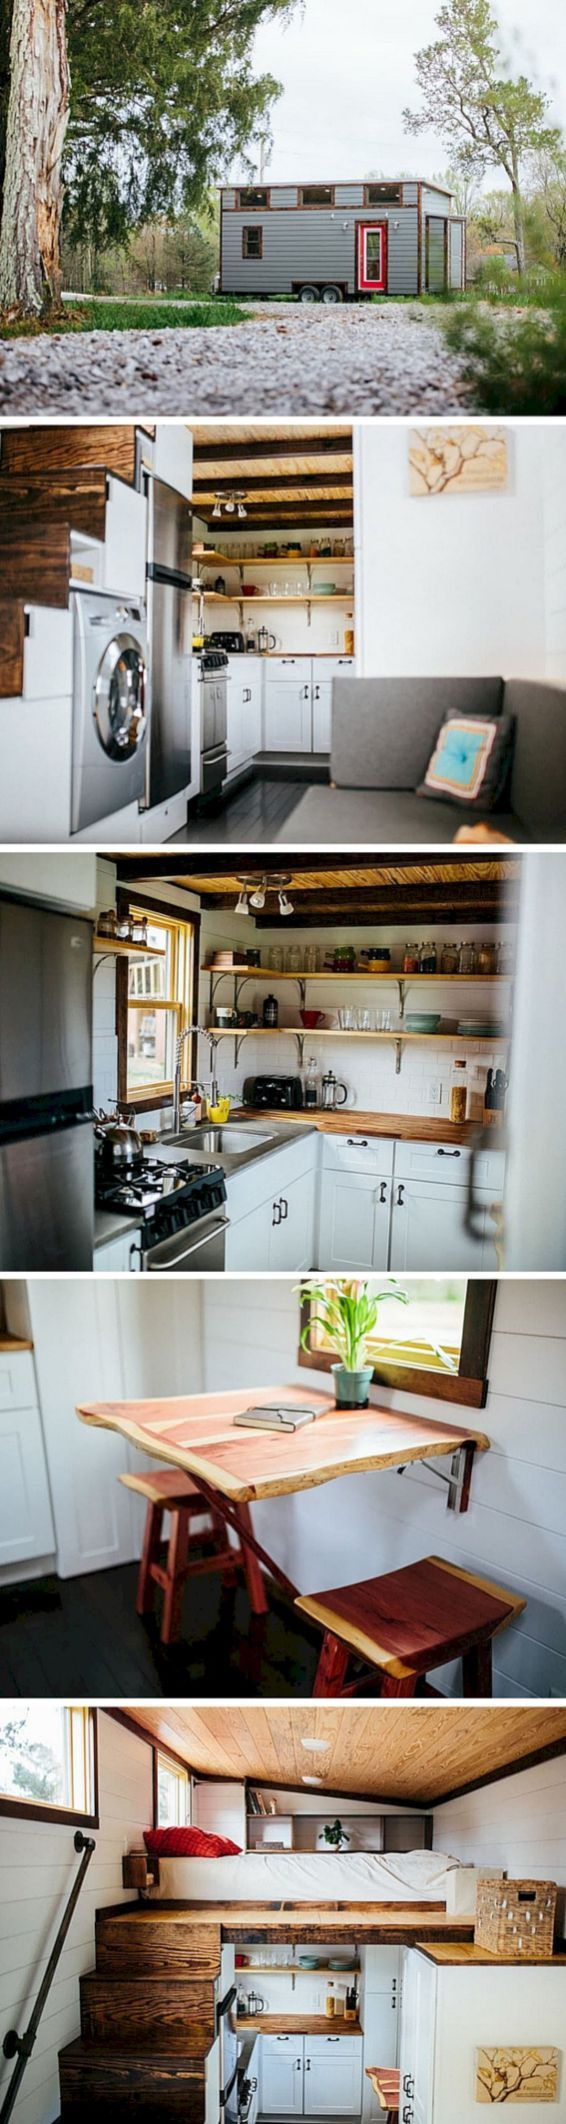 Stunning Tiny House on Wheels that You Must Have Right Now (03 Ideas)